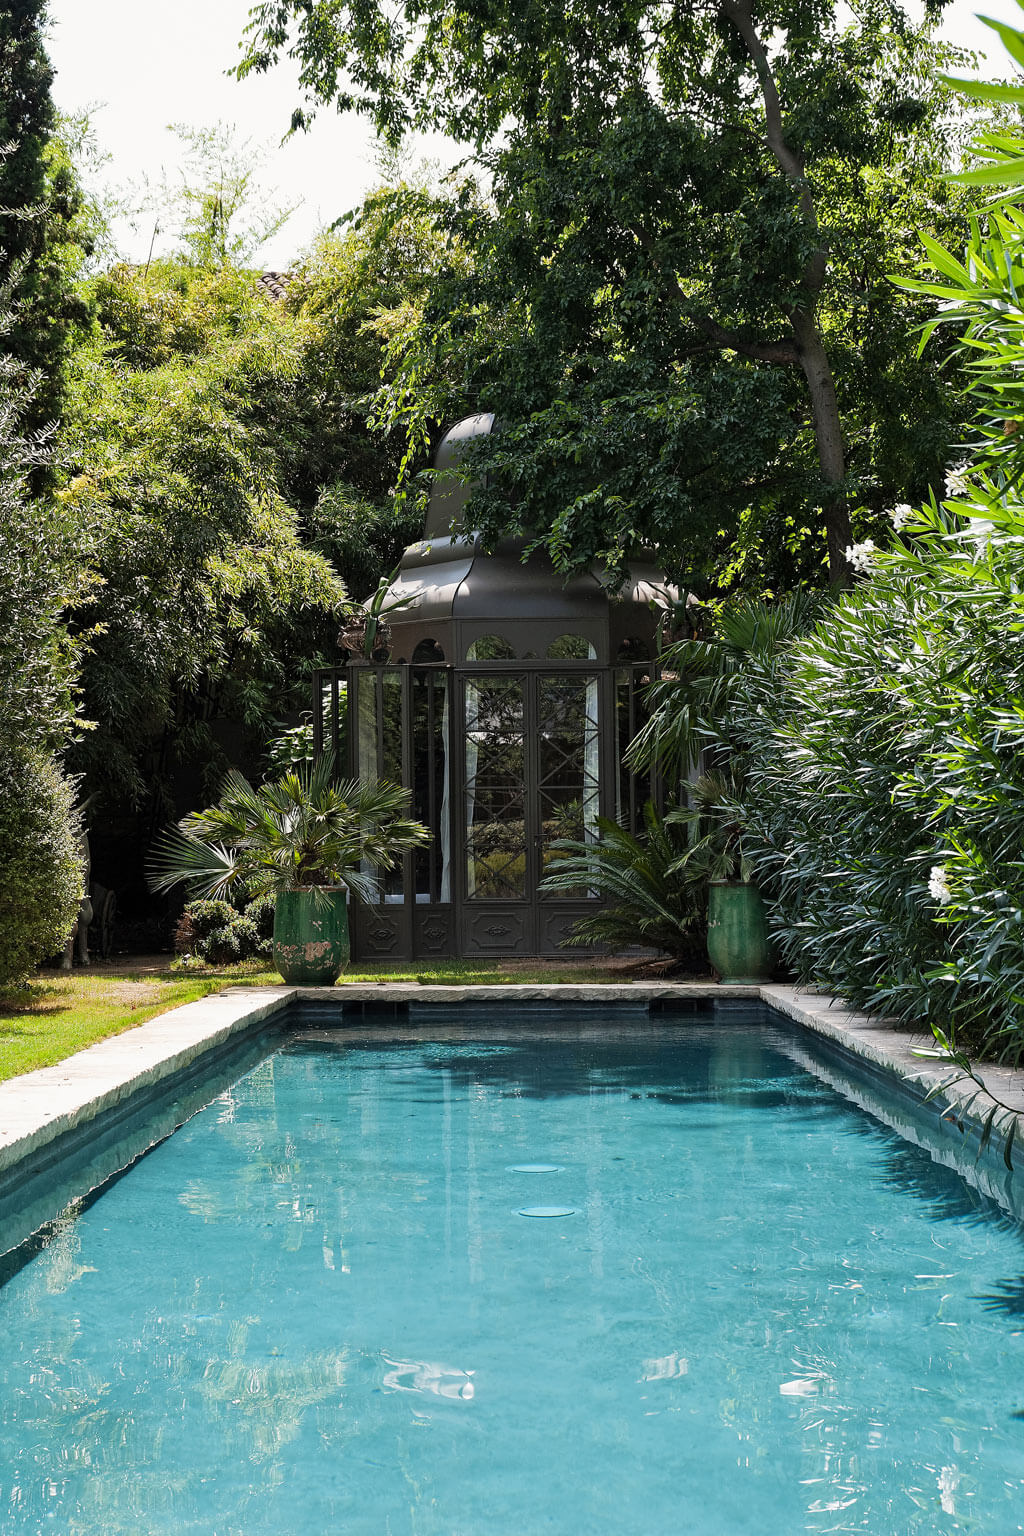 Gazebo and pool. Beautiful French country garden inspiration from a luxurious property in the South of France. Breathtaking 19th century restored French chateau with largest private garden in Avignon. Avignon Hôtel Particulier. Photo: Haven In.